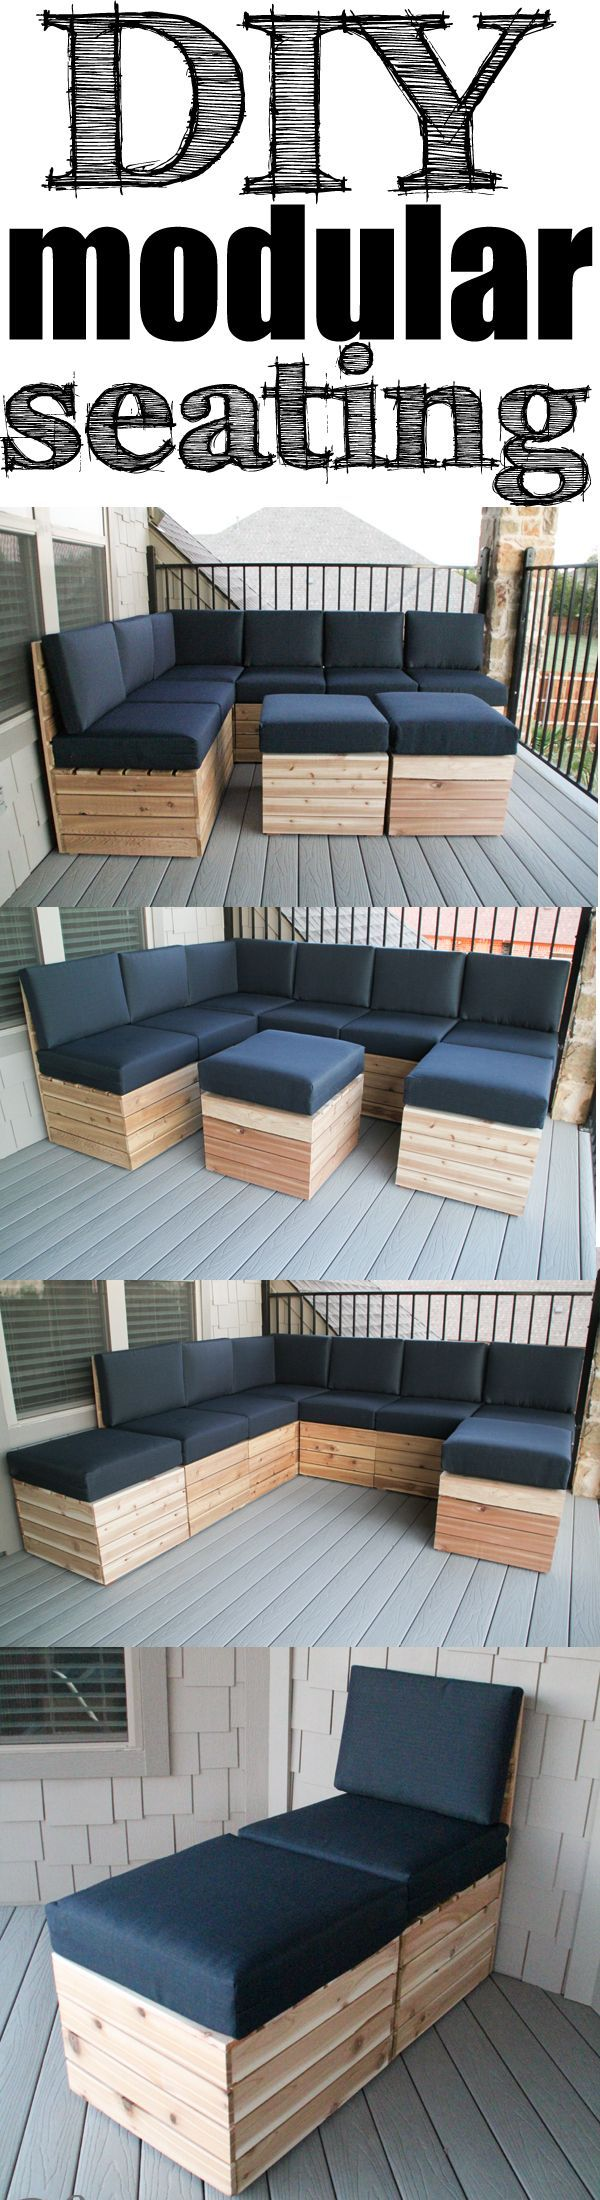 DIY Modular Outdoor Seating. Deck Furniture LayoutSectional Patio ...